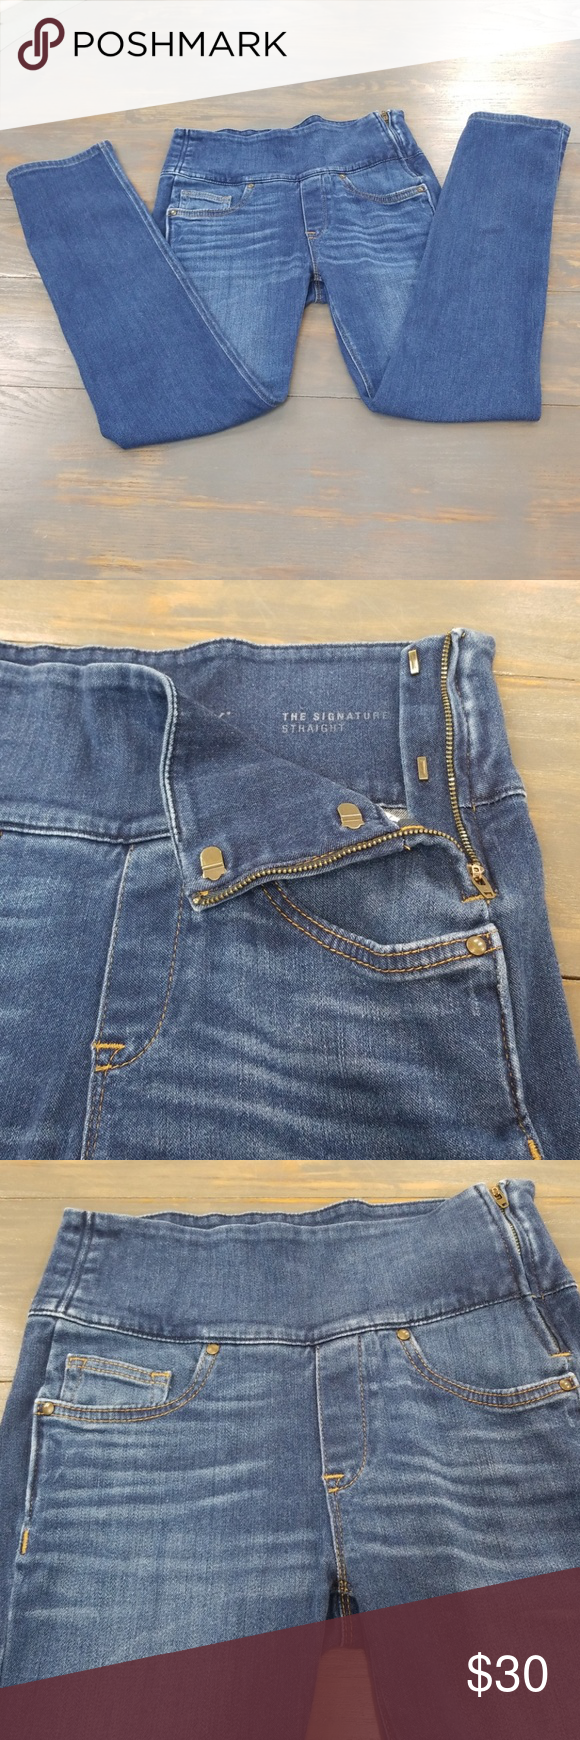 Spanks The Signature Straight Women S Jean S Sz 27 Excellent Conditions Spanks The Signature Straight Women S Jean S Size 27 1 Lycr Women Jeans Spanx Stylish But, not every dog is built for running. pinterest